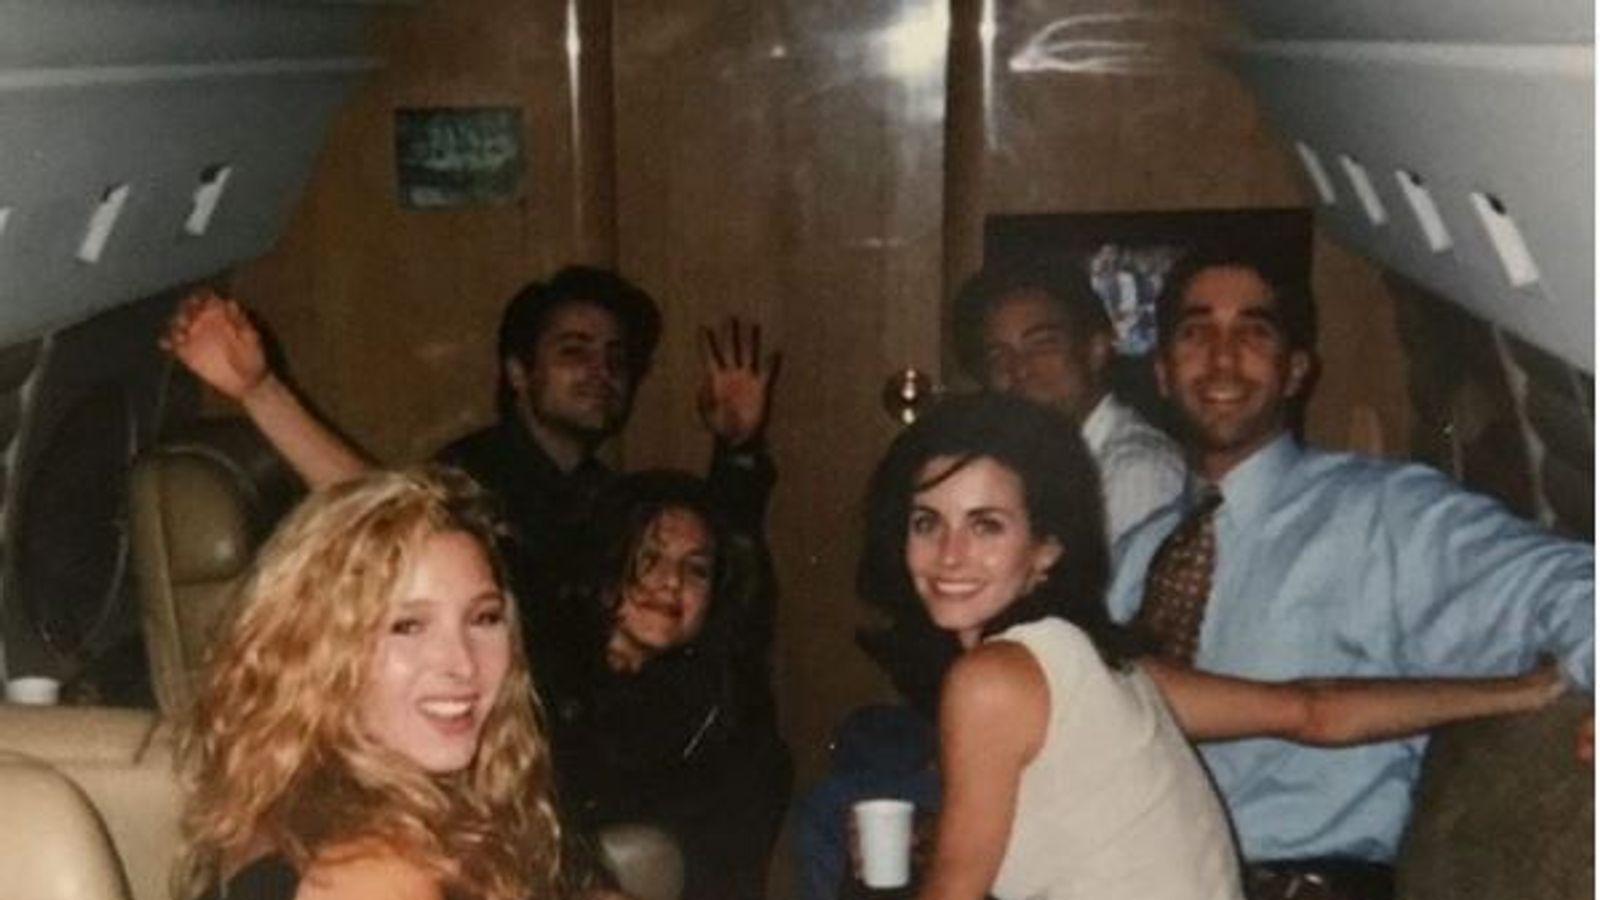 Courteney Cox shares early Friends photo from before show aired